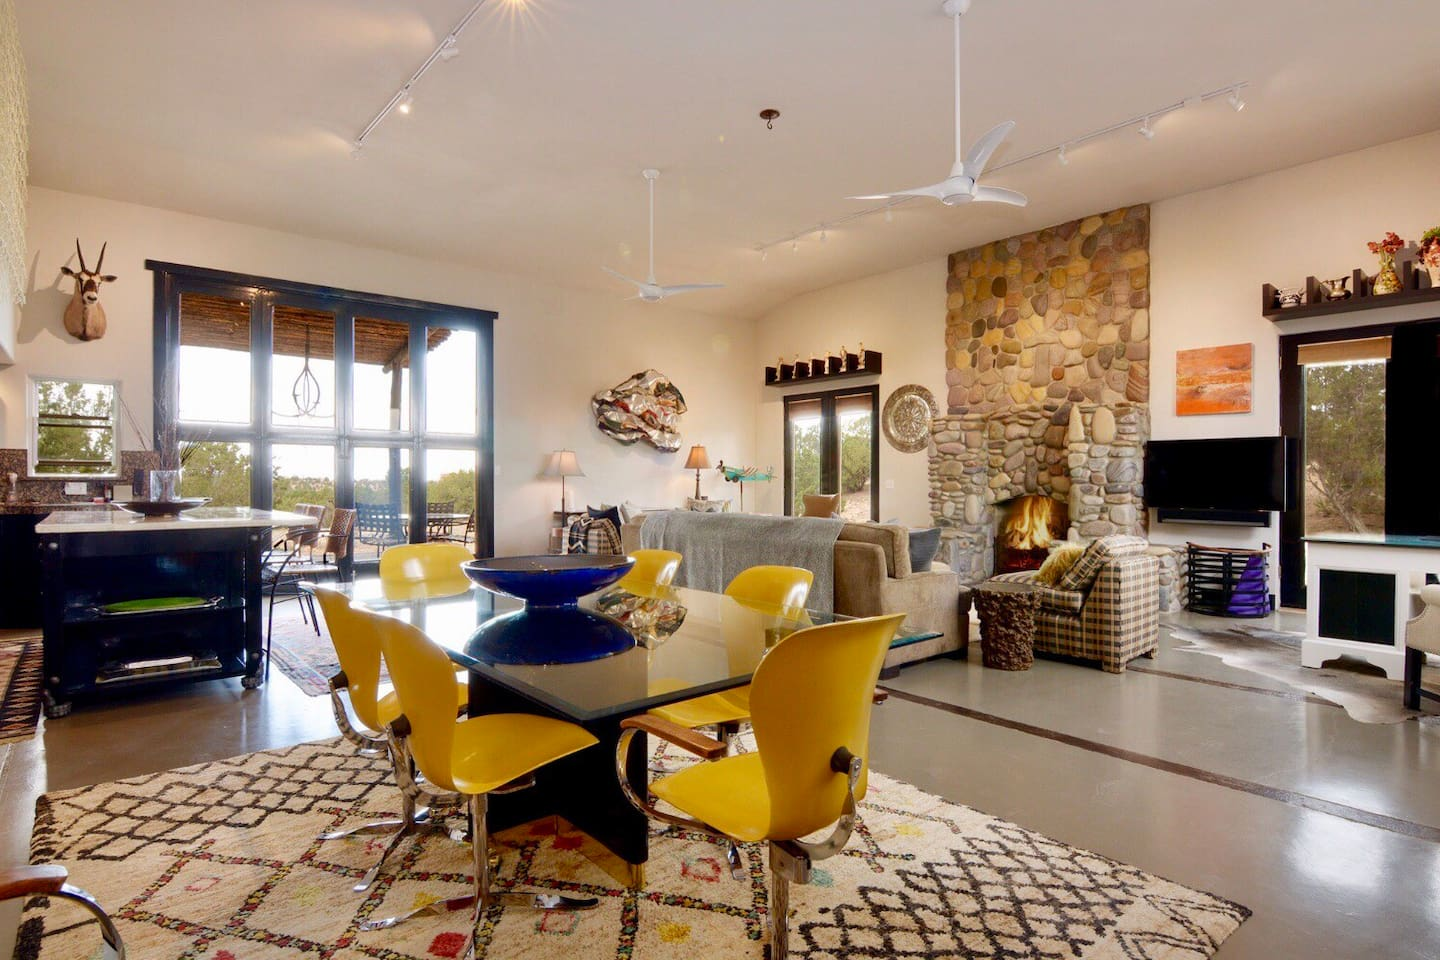 Expansive 900sq.ft. Living space